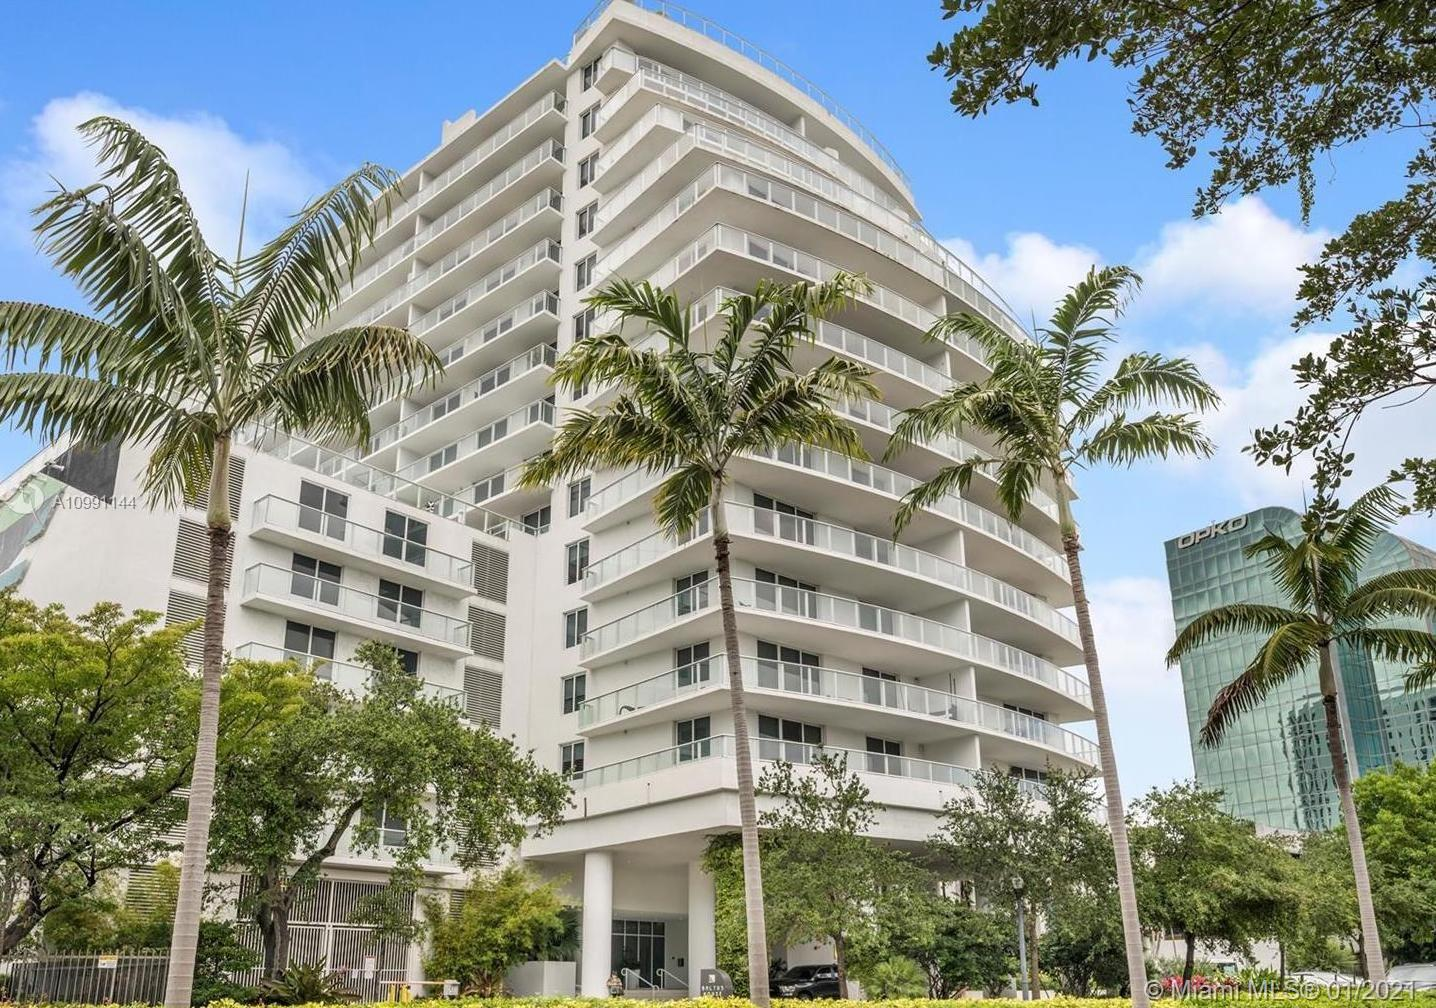 Baltus House #811 - 4250 Biscayne Blvd #811, Miami, FL 33137